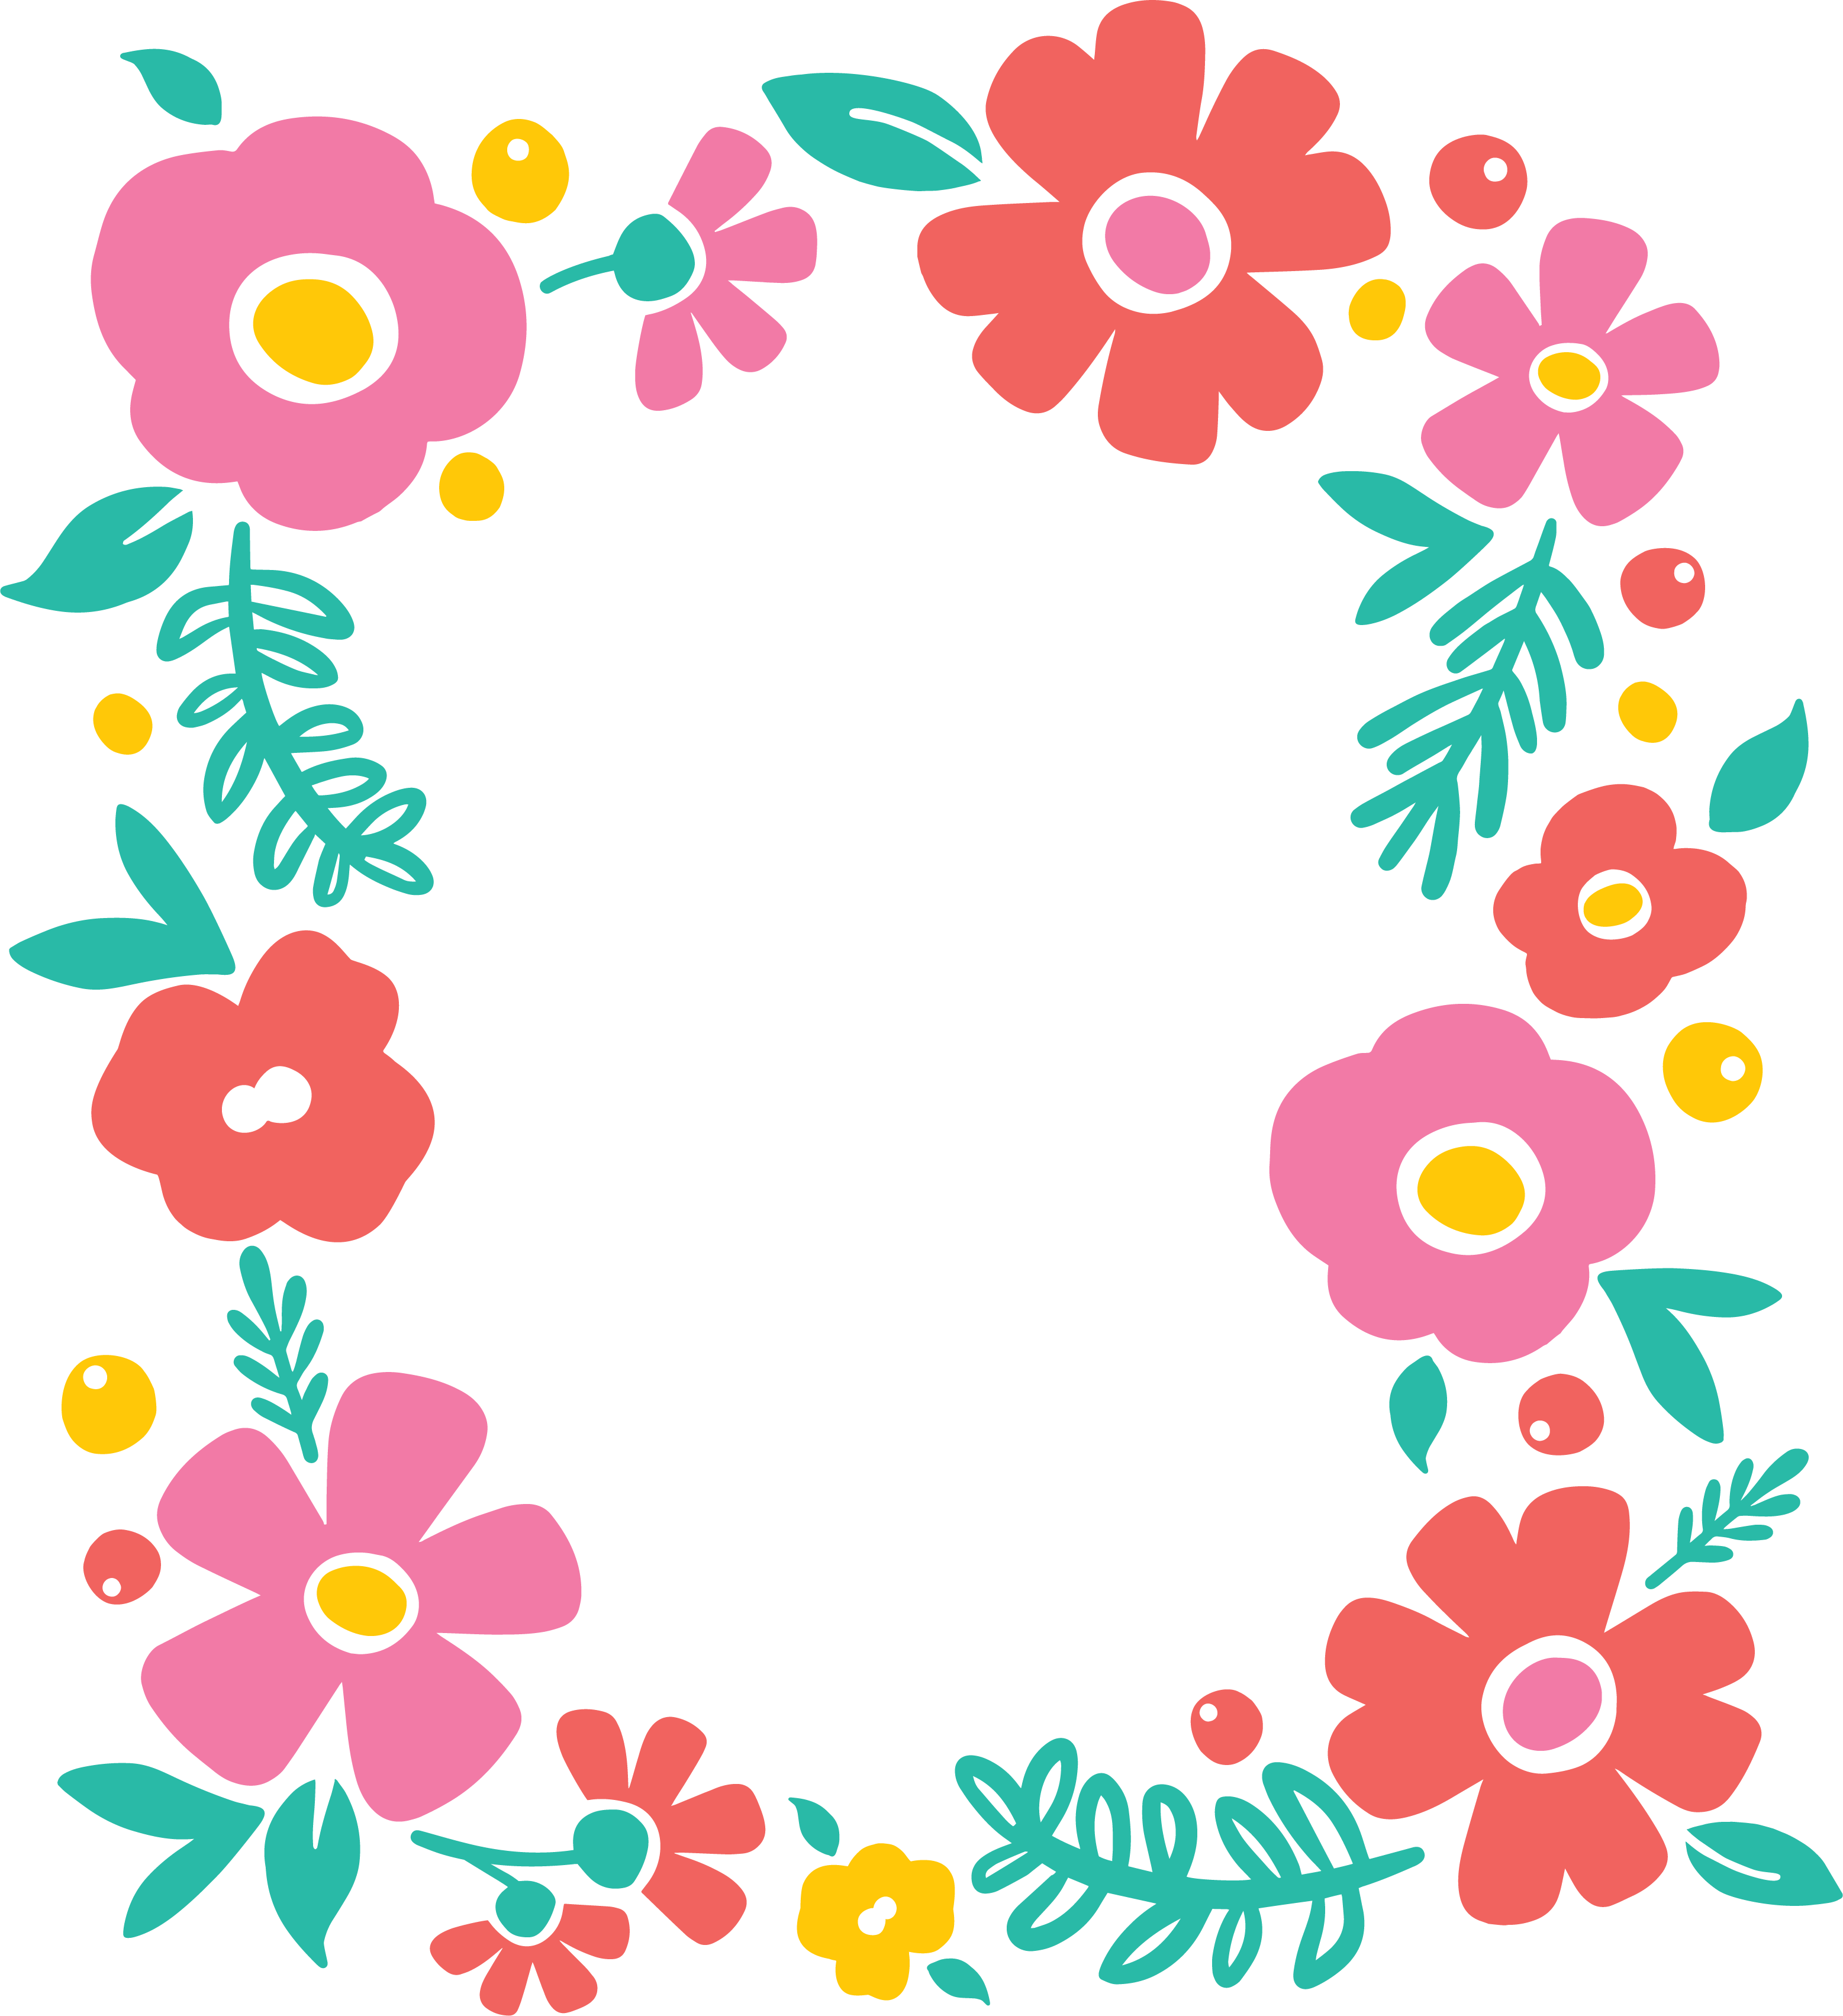 Free Svg Flower Cut File For Silhouette Or Cricut Persia.